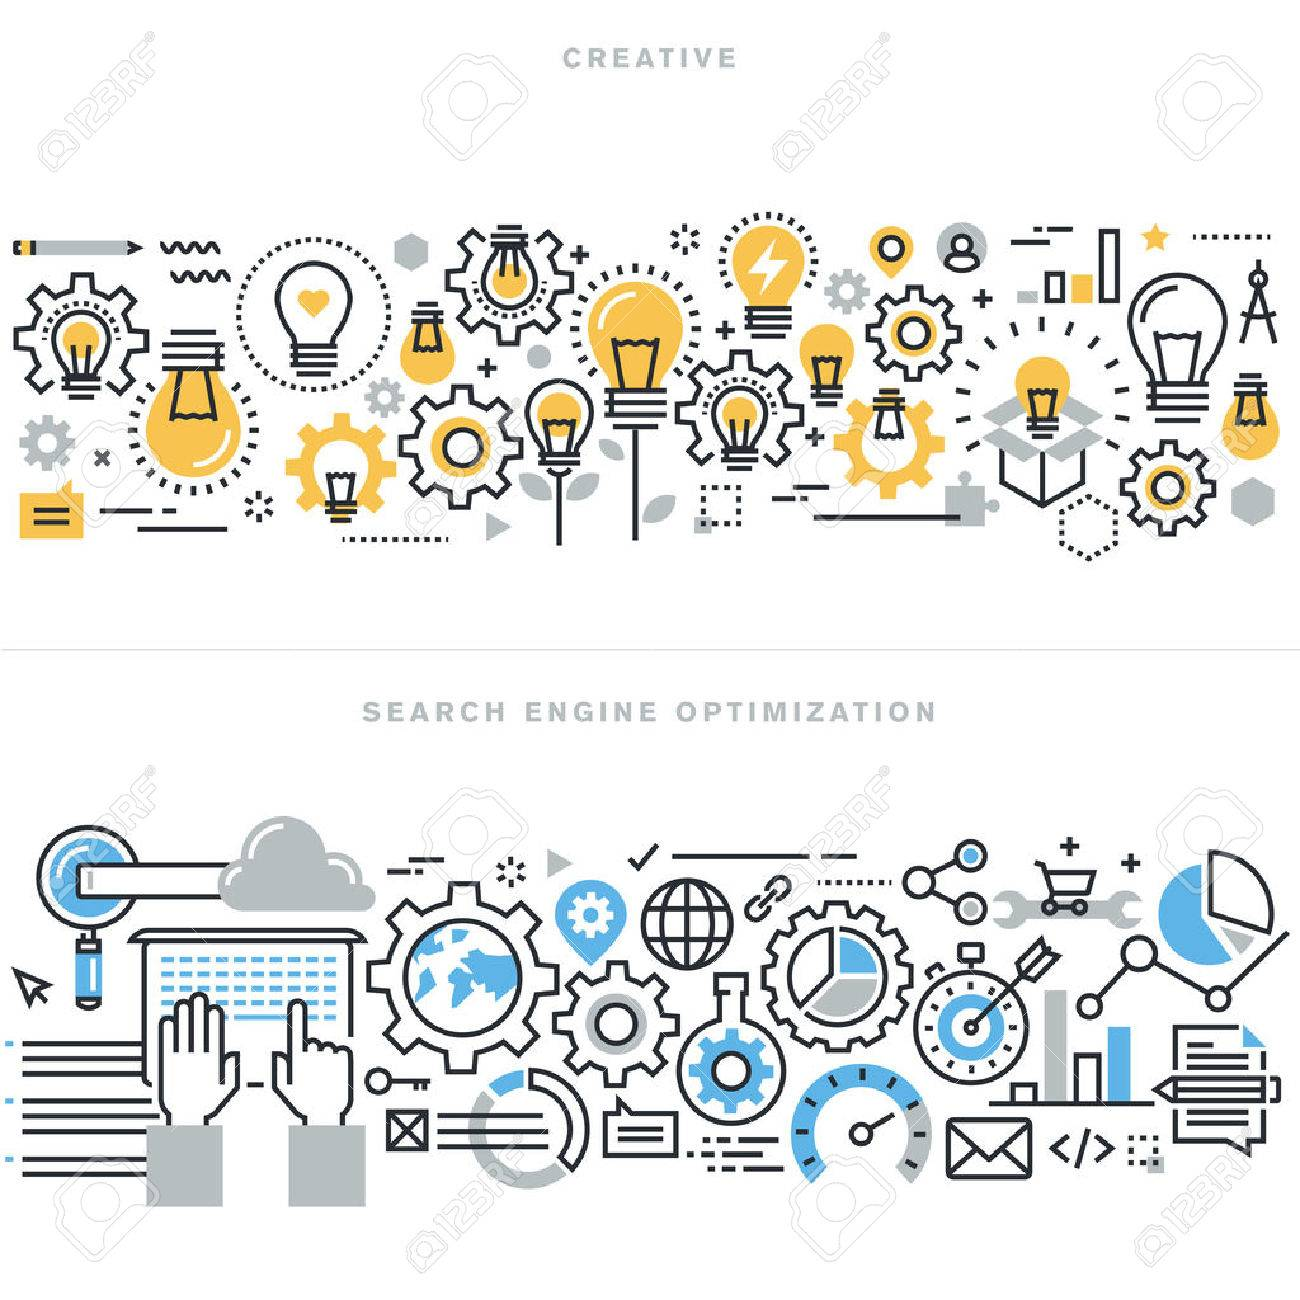 Flat line design vector illustration concepts for creative process workflow, marketing and design agency, website and app design and development, search engine optimization, for website banner. Stock Vector - 47546798